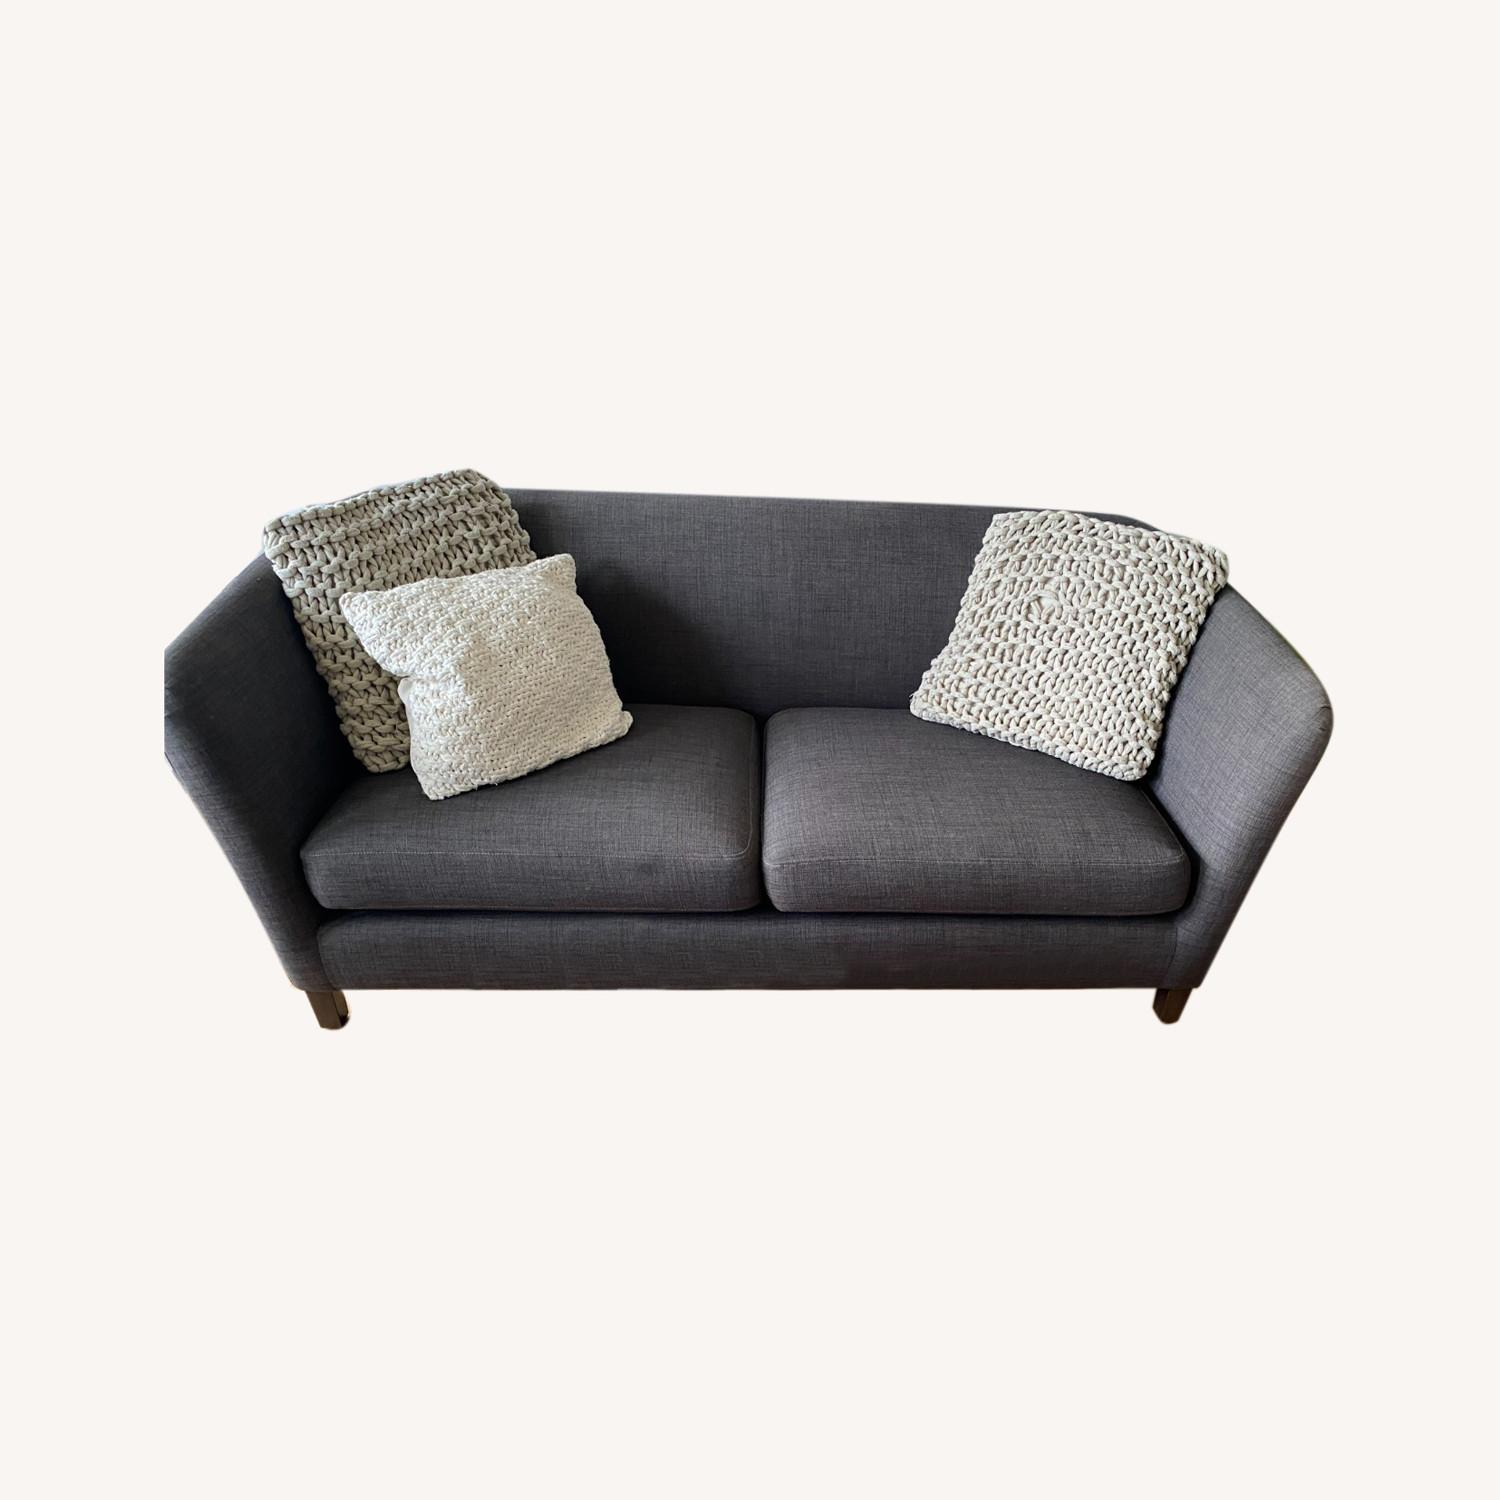 Crate and Barrel Loveseat - image-0